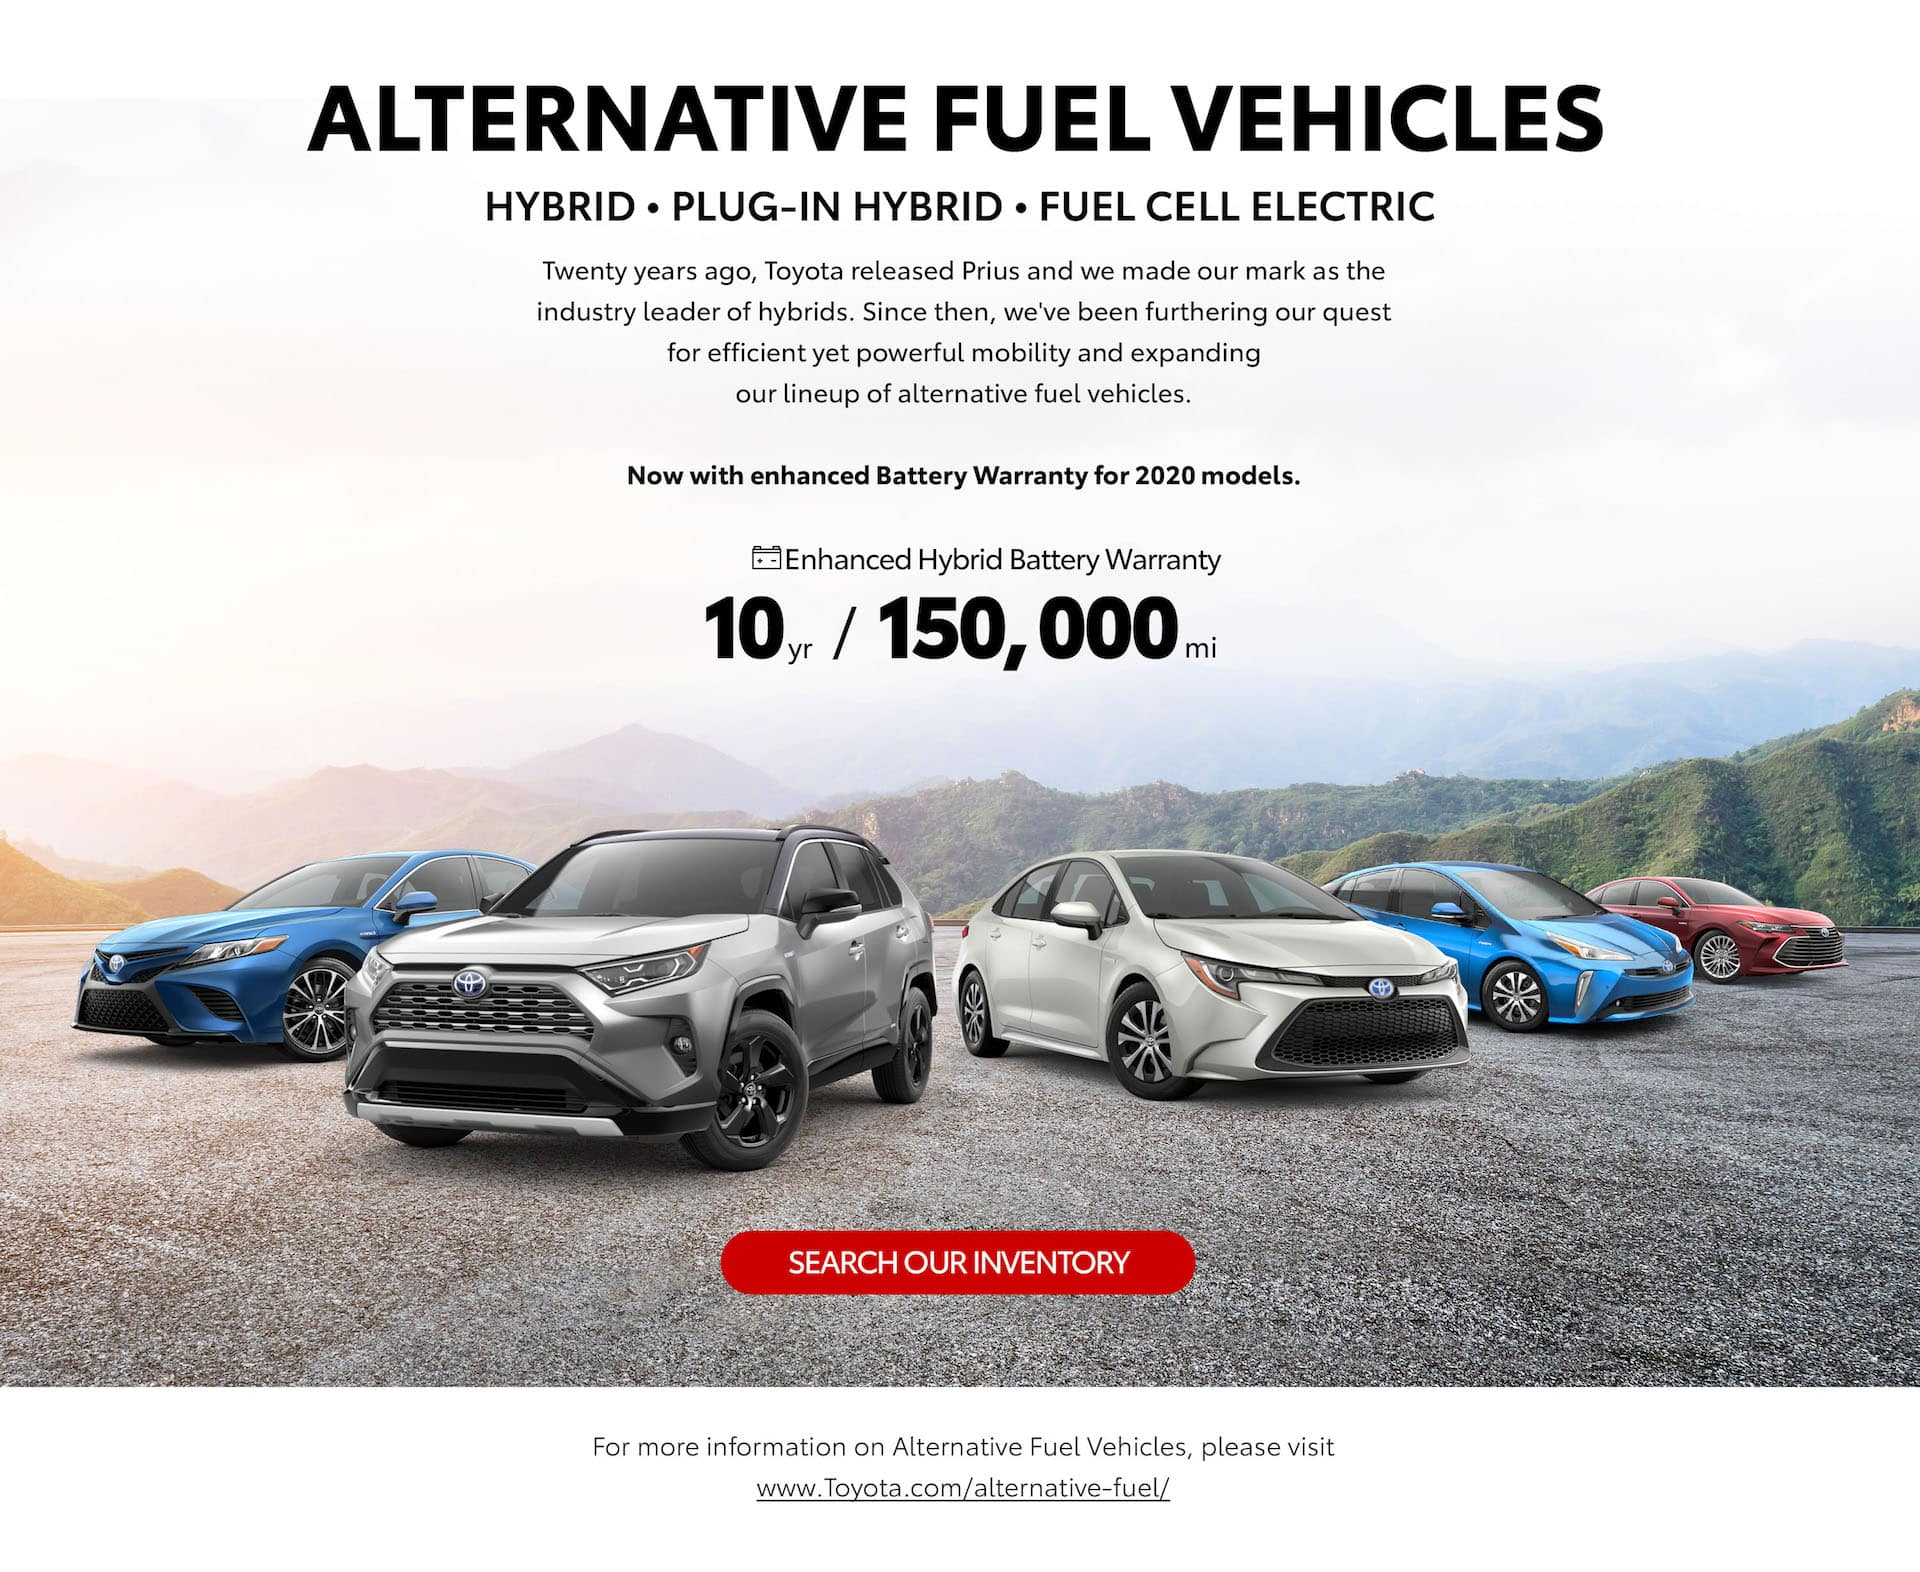 TDDS-Alternative-Fuel-Vehicles_landing-page-mock_2019-10-09